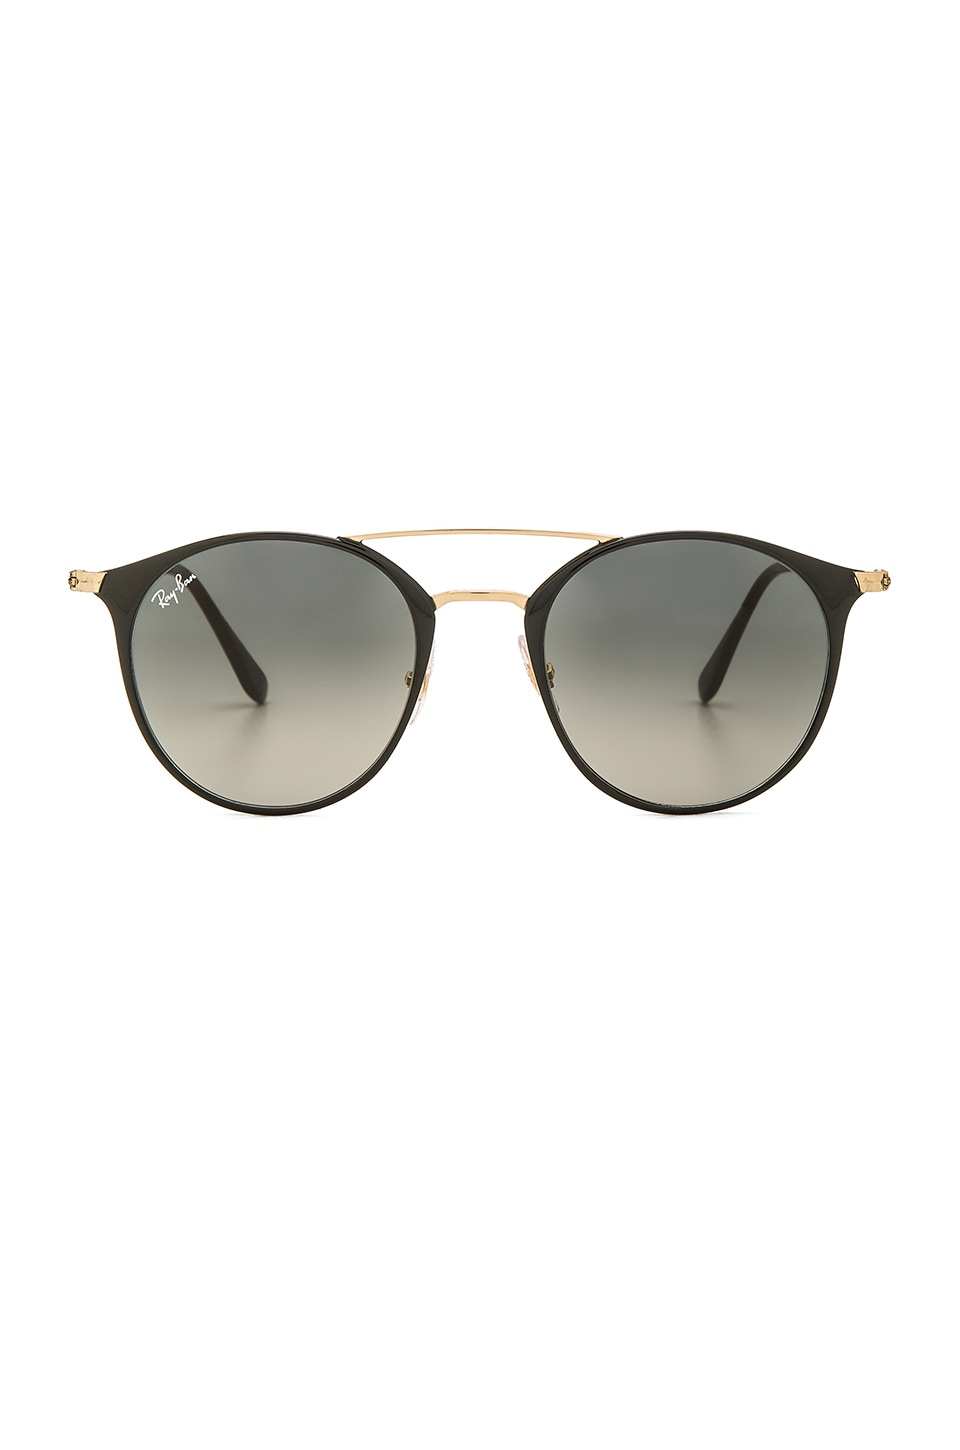 Ray-Ban 0RB3546 in Gold Top Black